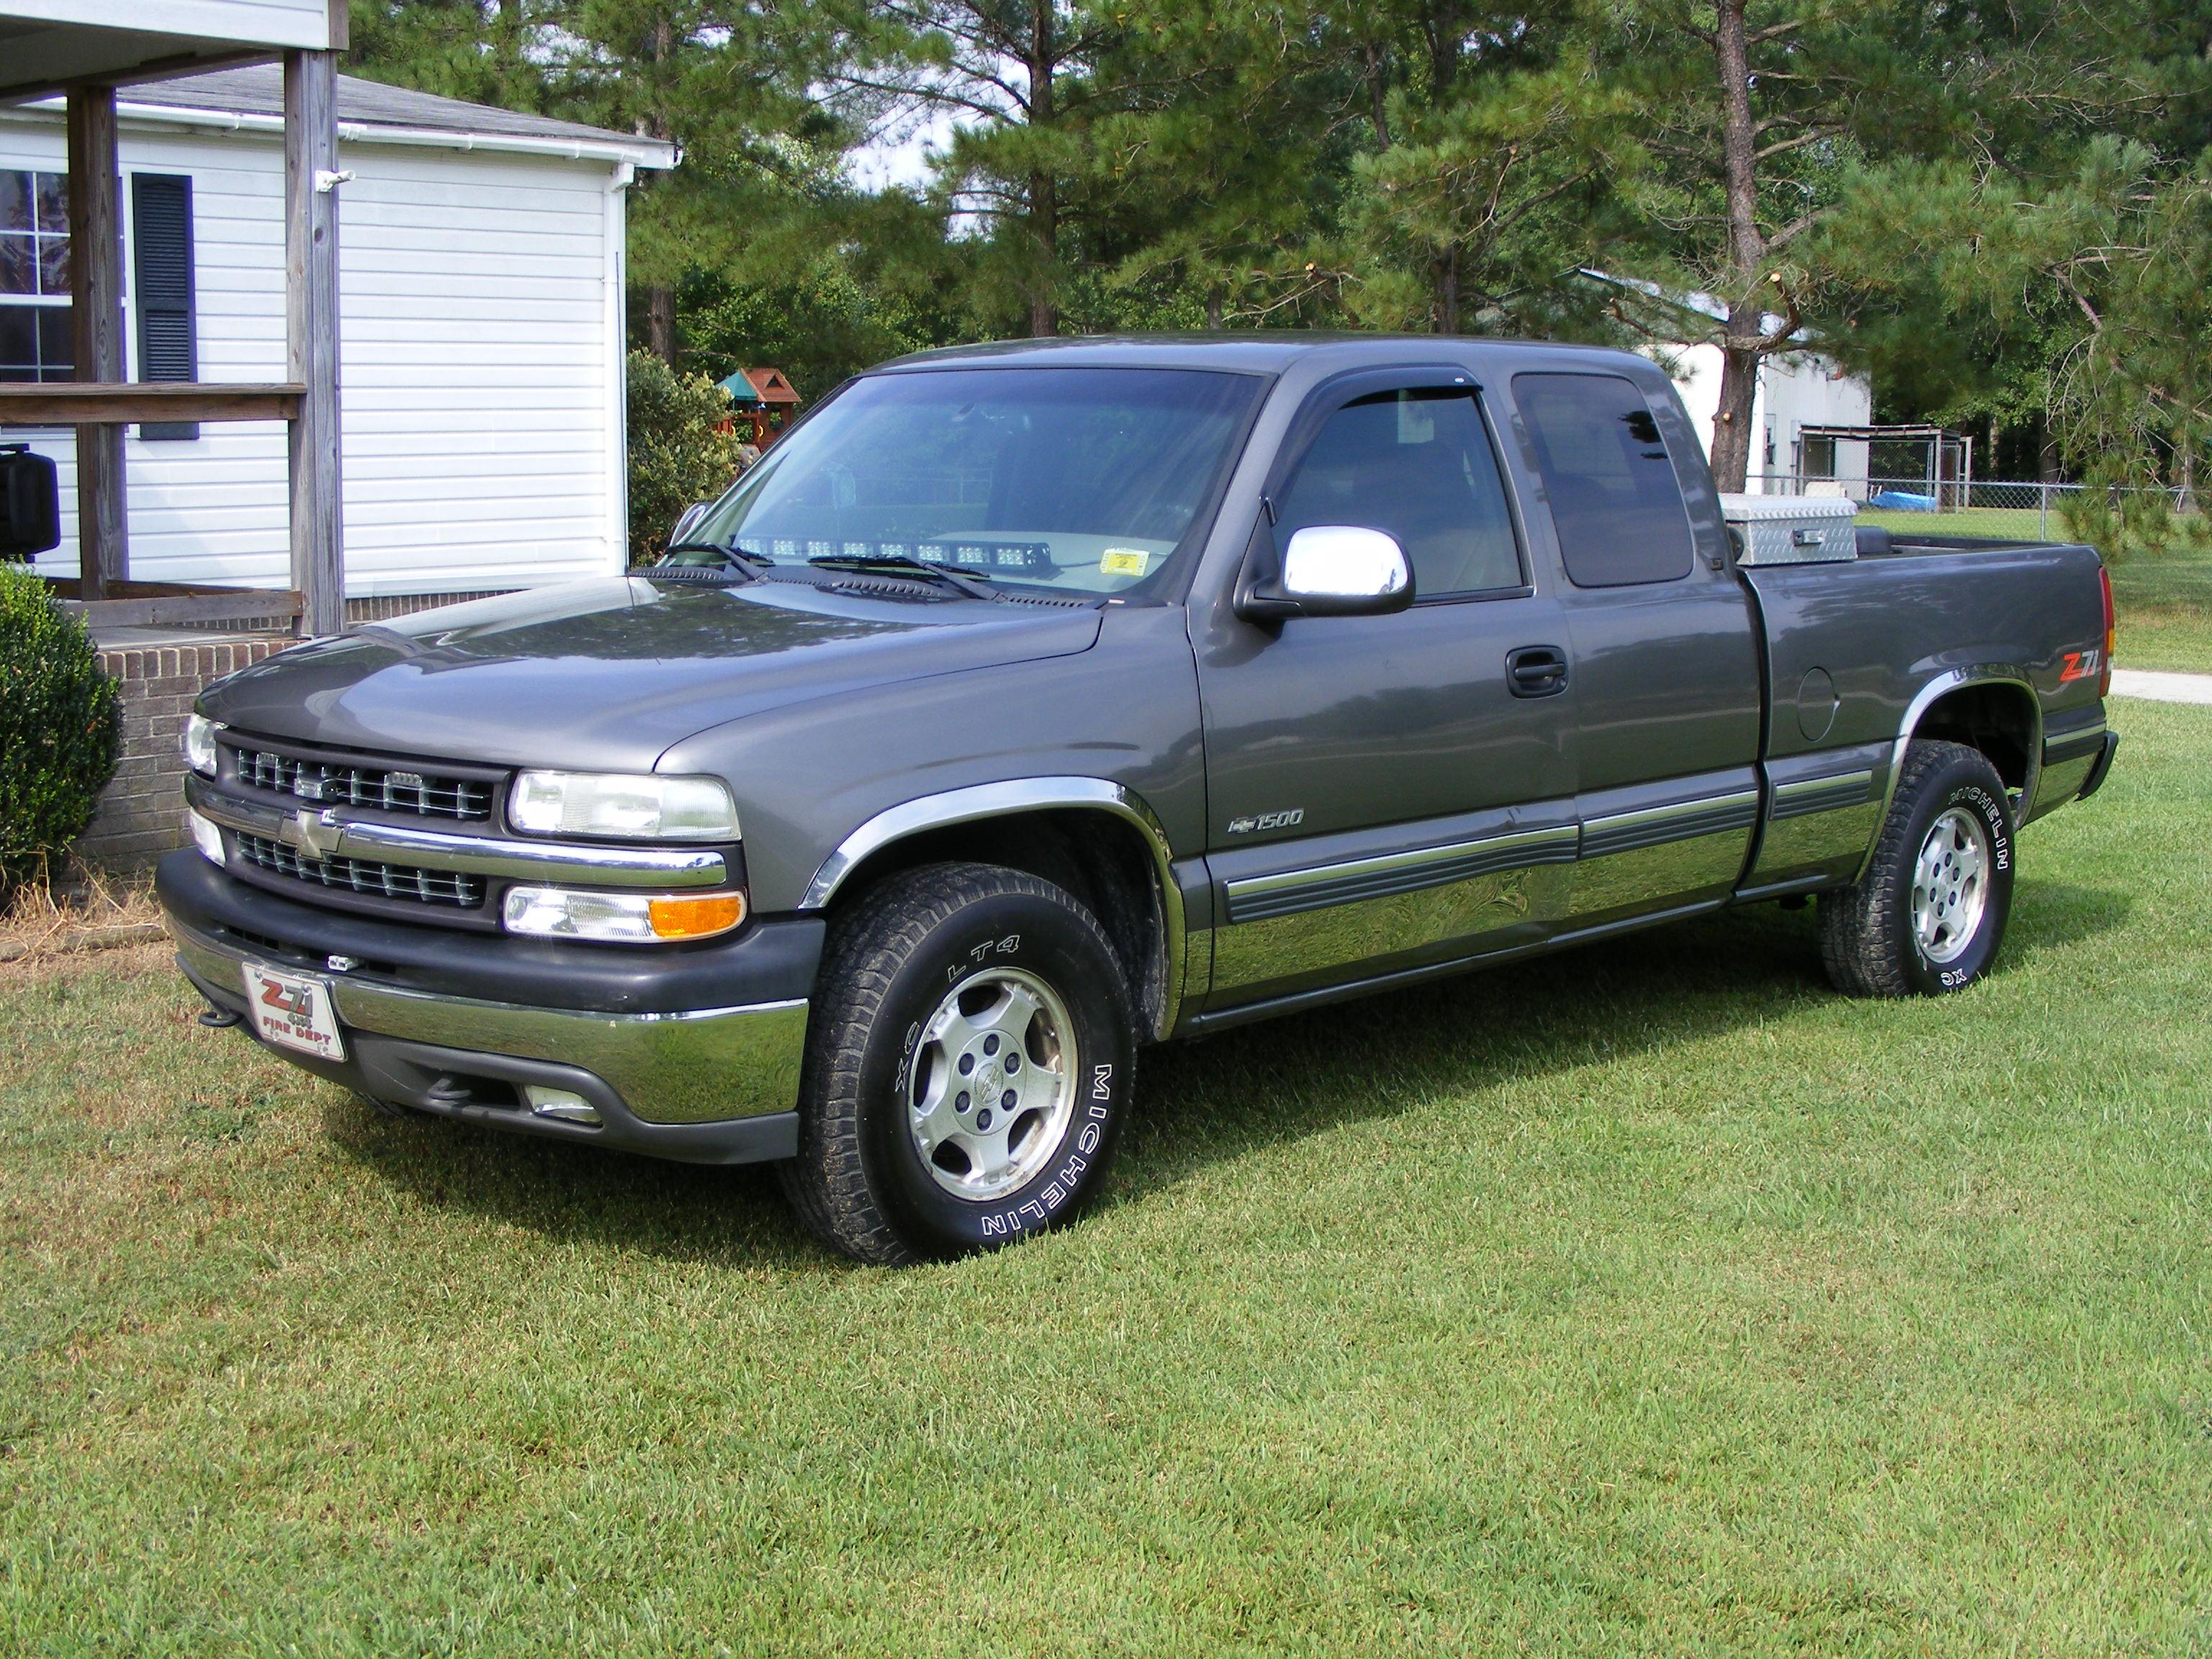 mrmach170 2000 chevrolet silverado 1500 extended cab specs photos modification info at cardomain. Black Bedroom Furniture Sets. Home Design Ideas